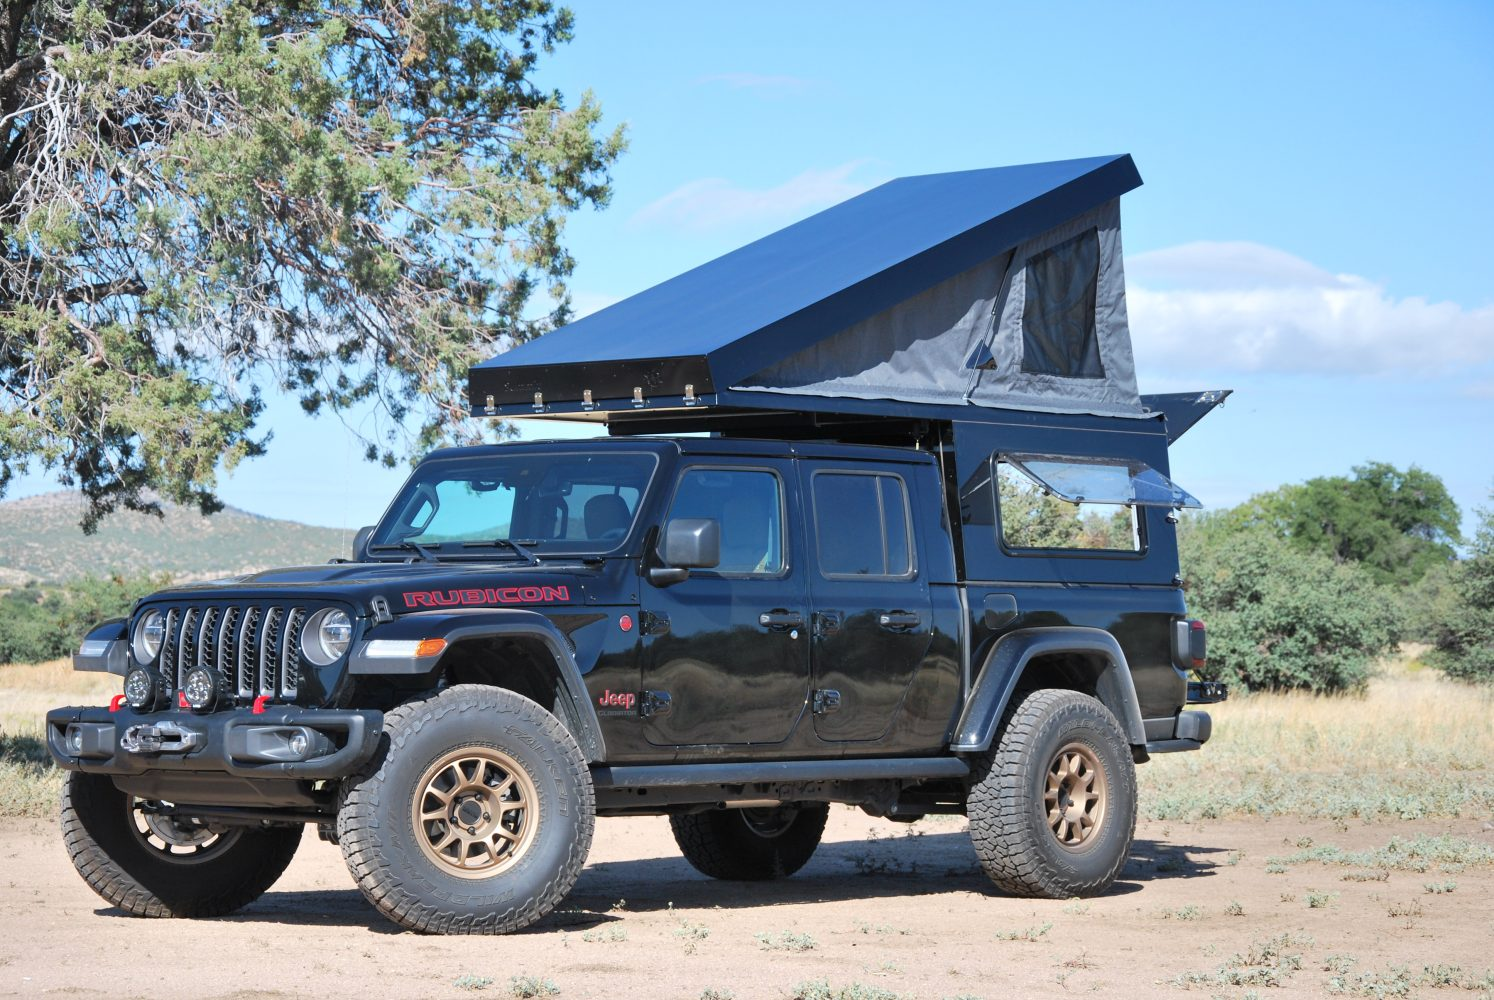 Podcast #7: Building a Jeep Gladiator for Overlanding - Expedition Portal